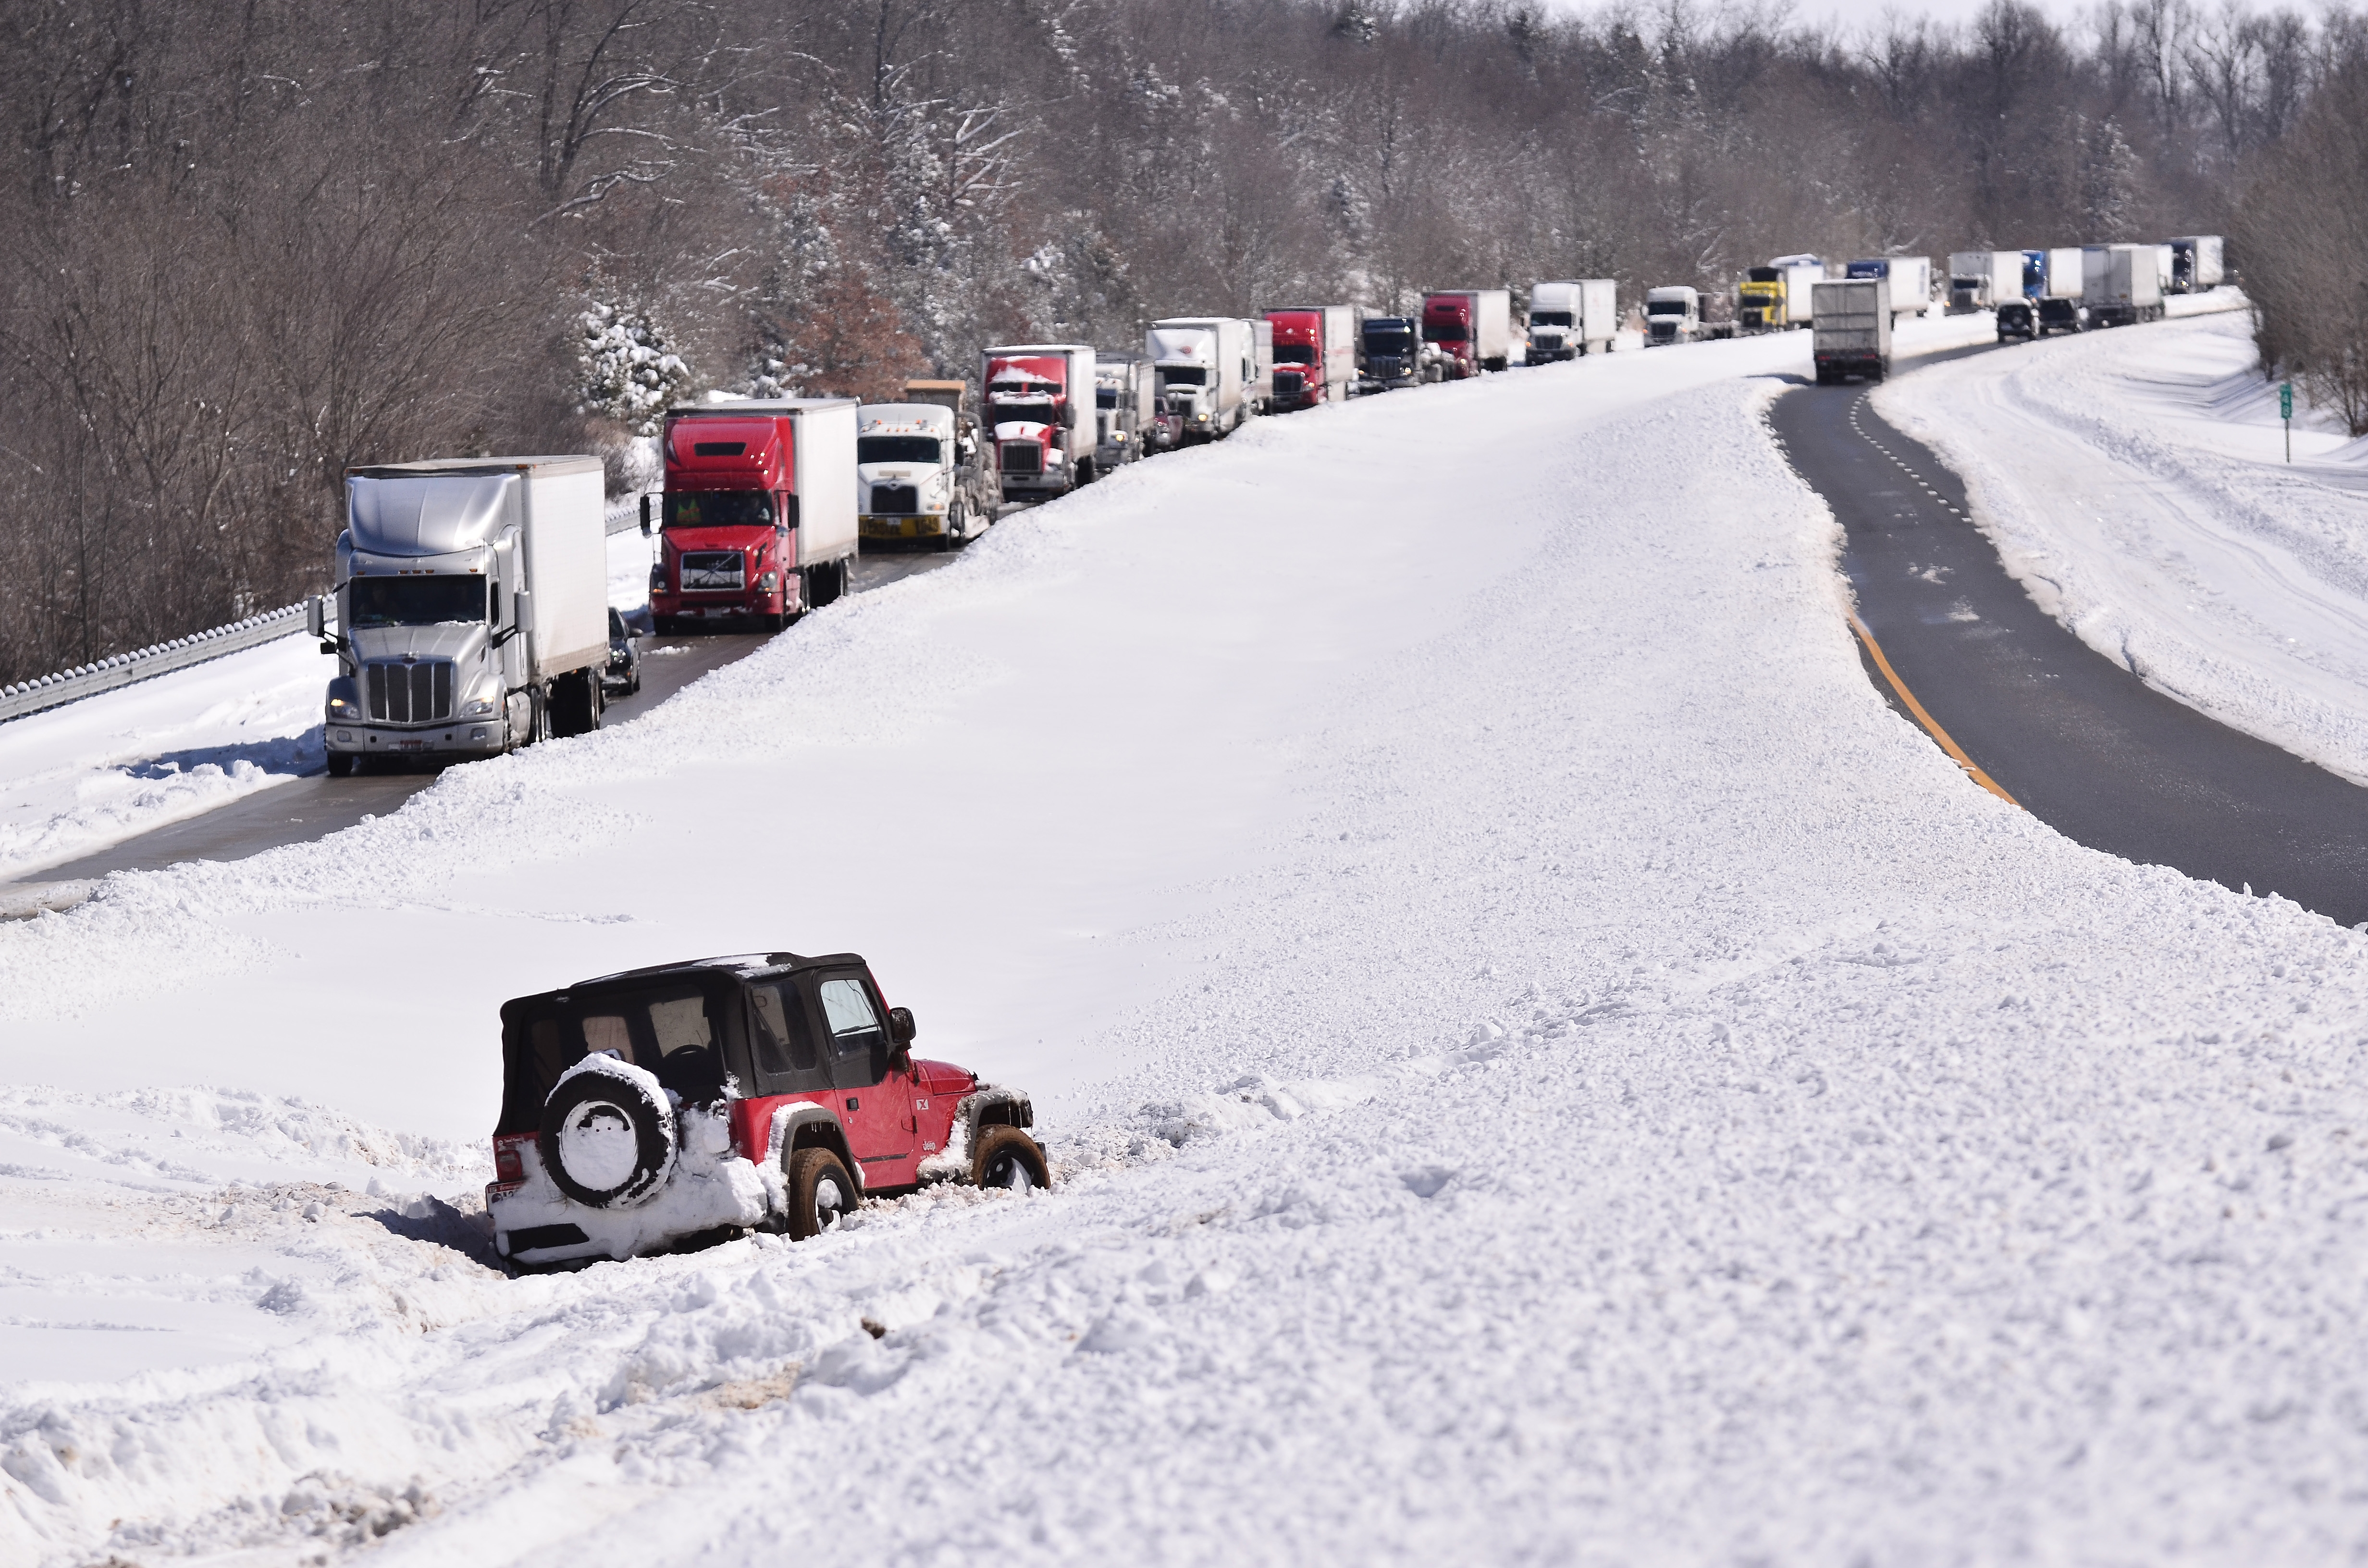 A vehicle sits in the median of Interstate 24 as drivers wait after being stranded between Eddyville and Cadiz, Ky., Thursday, March 5, 2015. Interstate 24 between Paducah and Cadiz was closed after nearly a foot of snow fell in the region. (AP Photo/Stephen Lance Dennee)